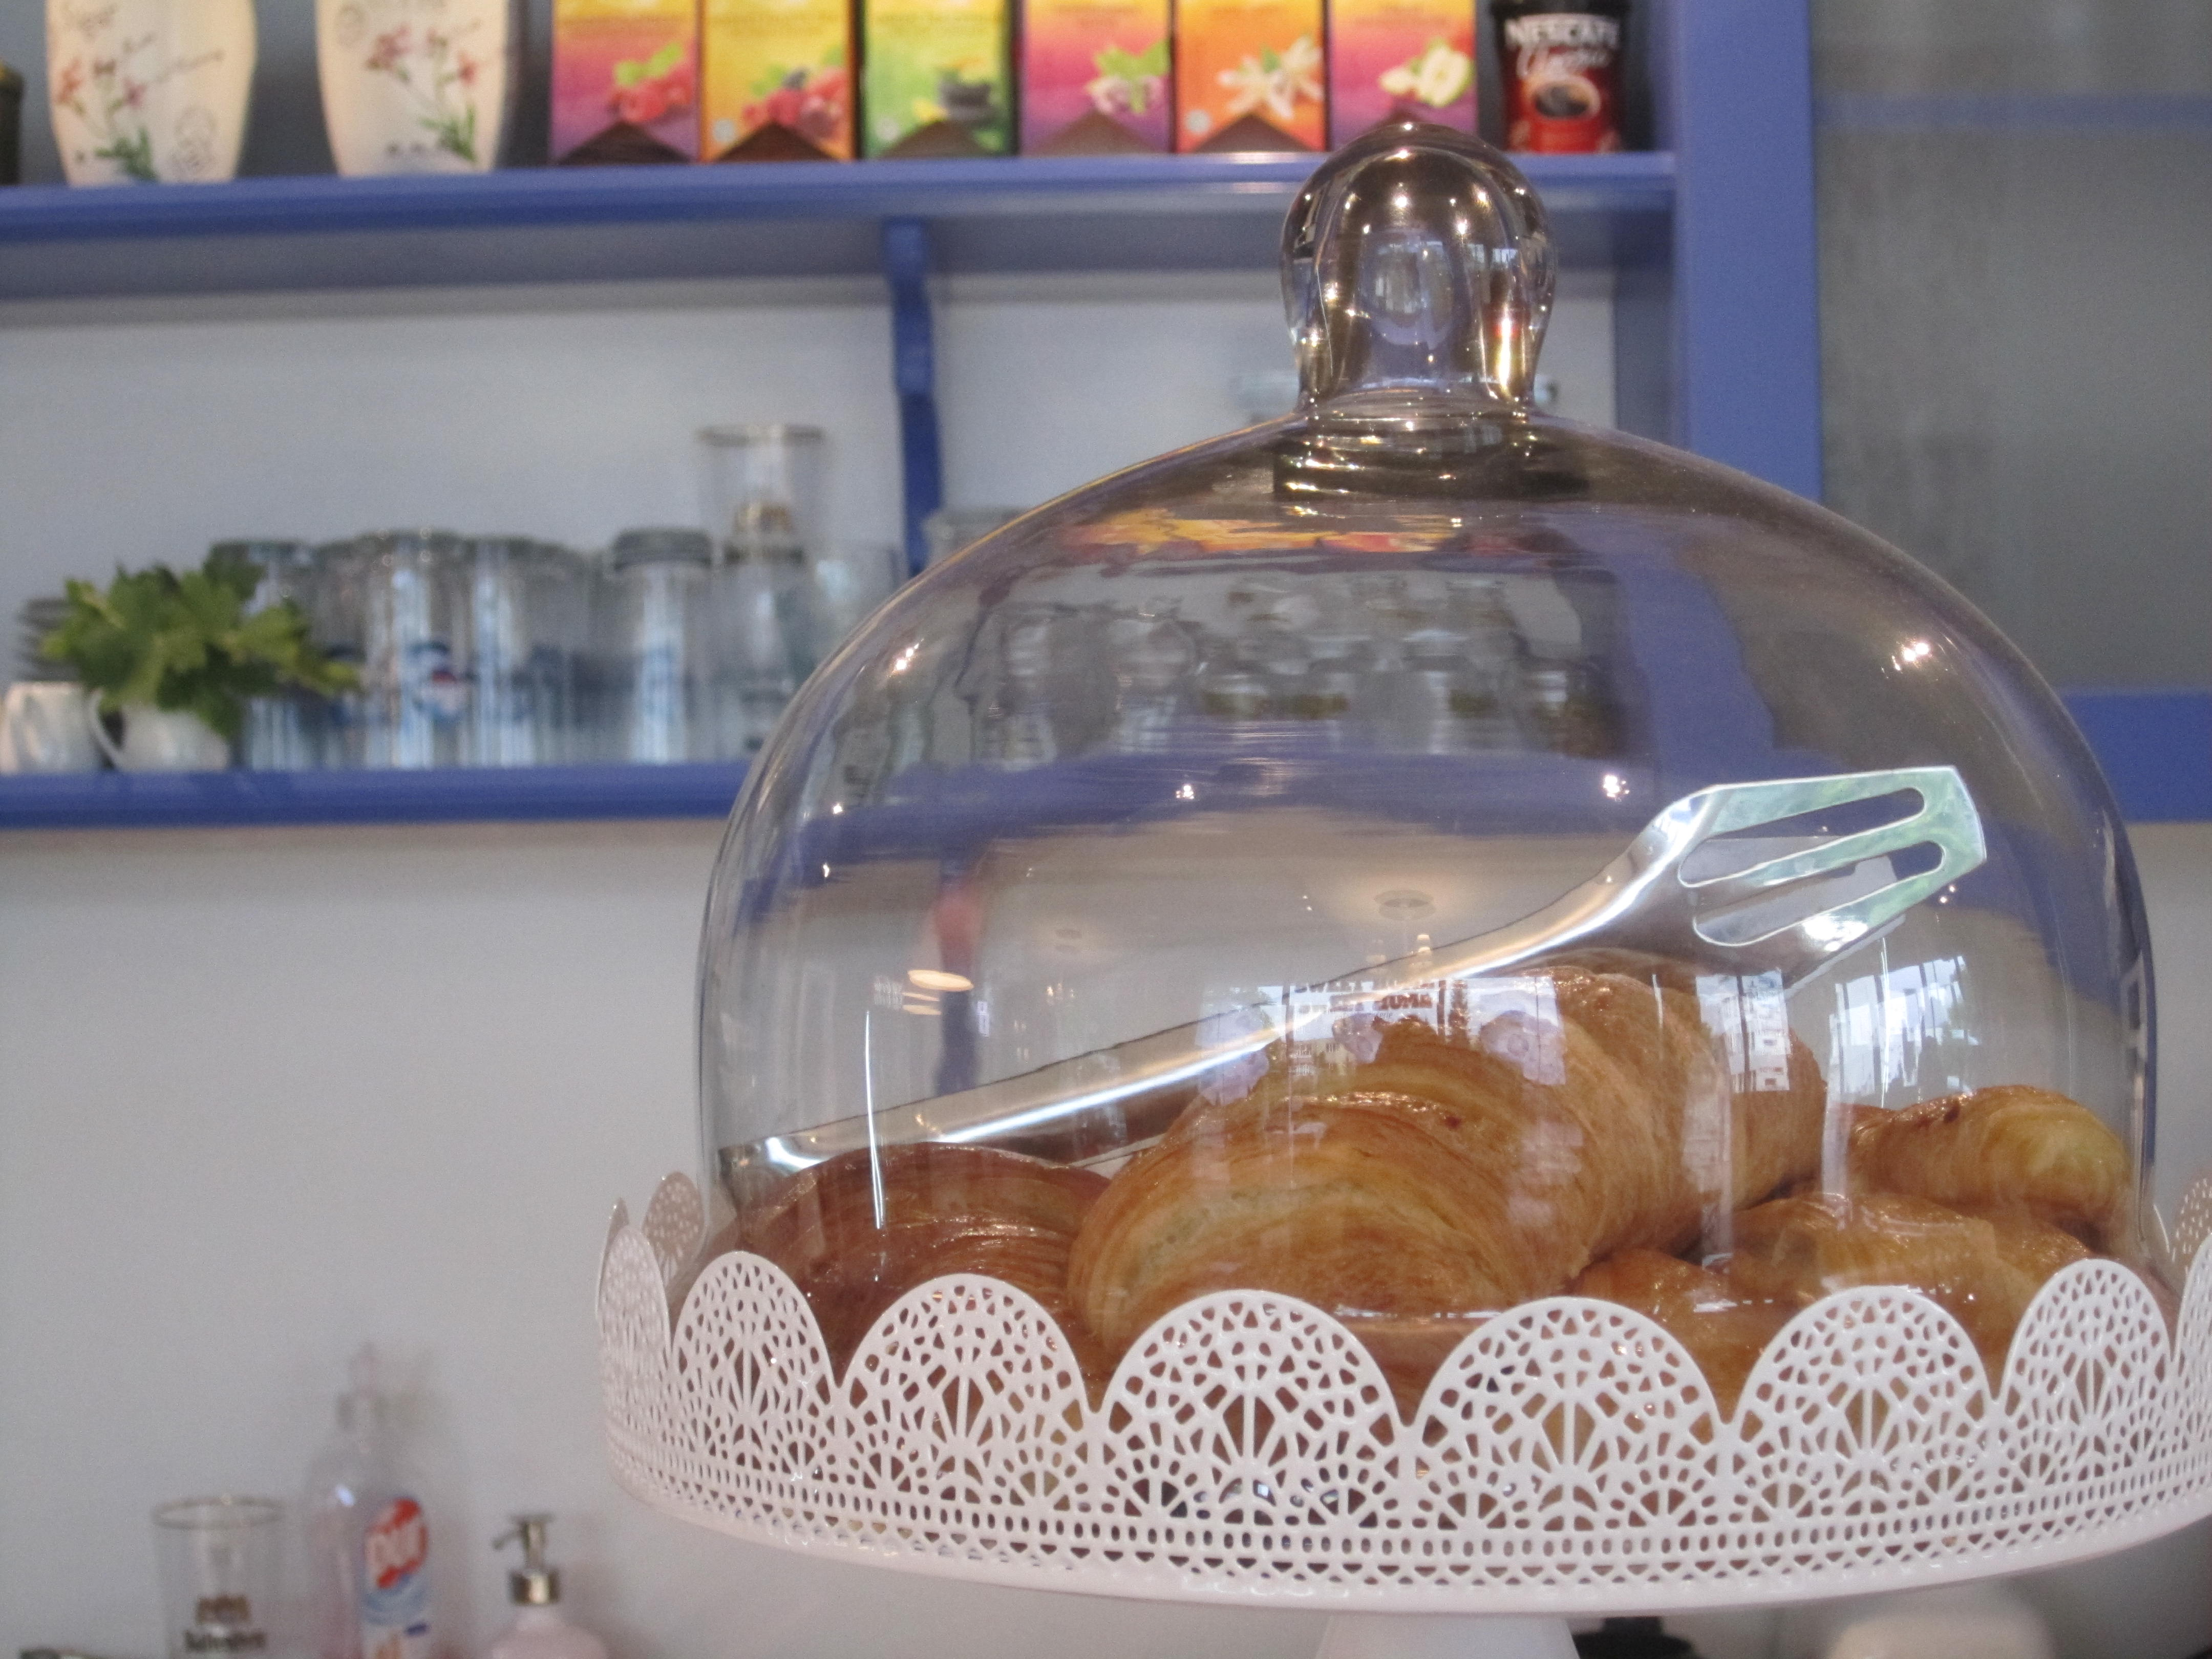 Sweet Home Café & Patisserie is a wonderful place for enjoying a cup of coffee or cappuccino while trying a freshly baked croissant with a glass of fresh or some of the cakes on the window display.